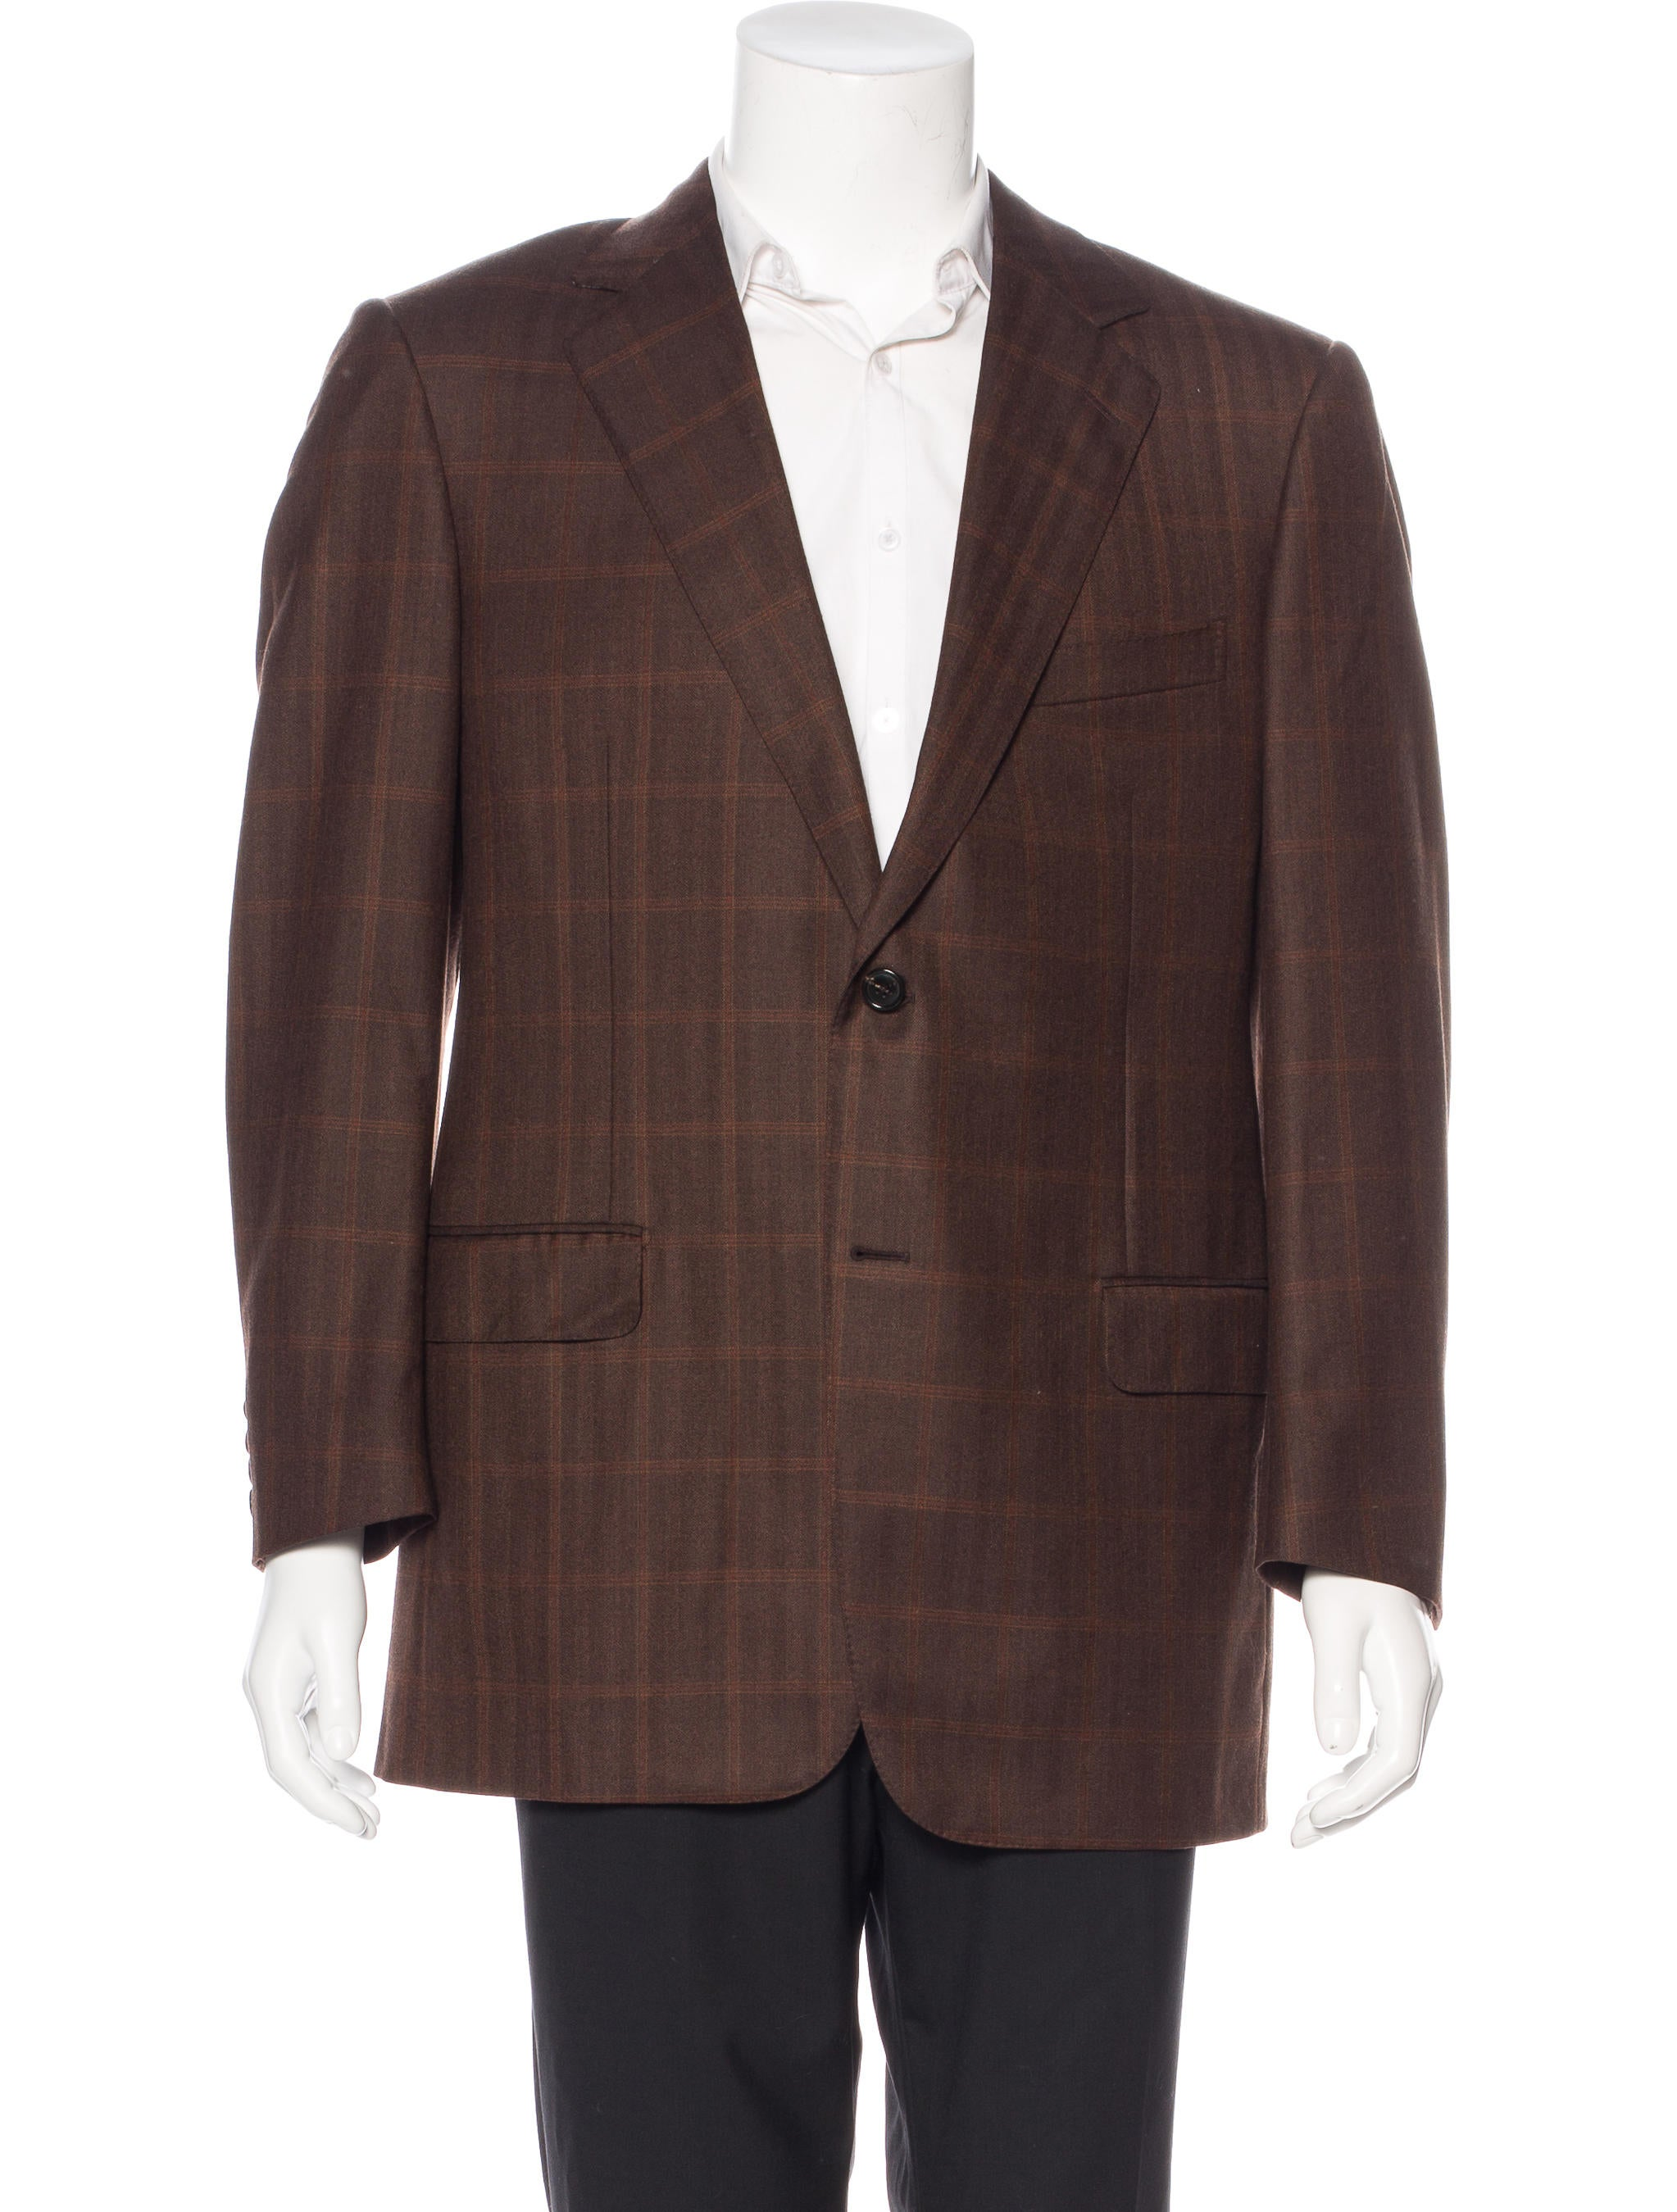 Blazers & Sport Coats Sale. SALE category list. To navigate through category please use tab button. All Sale Suits Blazers & Sport Coats Dress Shirts Casual Shirts In a flattering Slim Fit this fine wool sport coat has a textured weave that lends it depth and interest. A notch lapel, hacking pockets, and cascade buttons at the cuff create a.